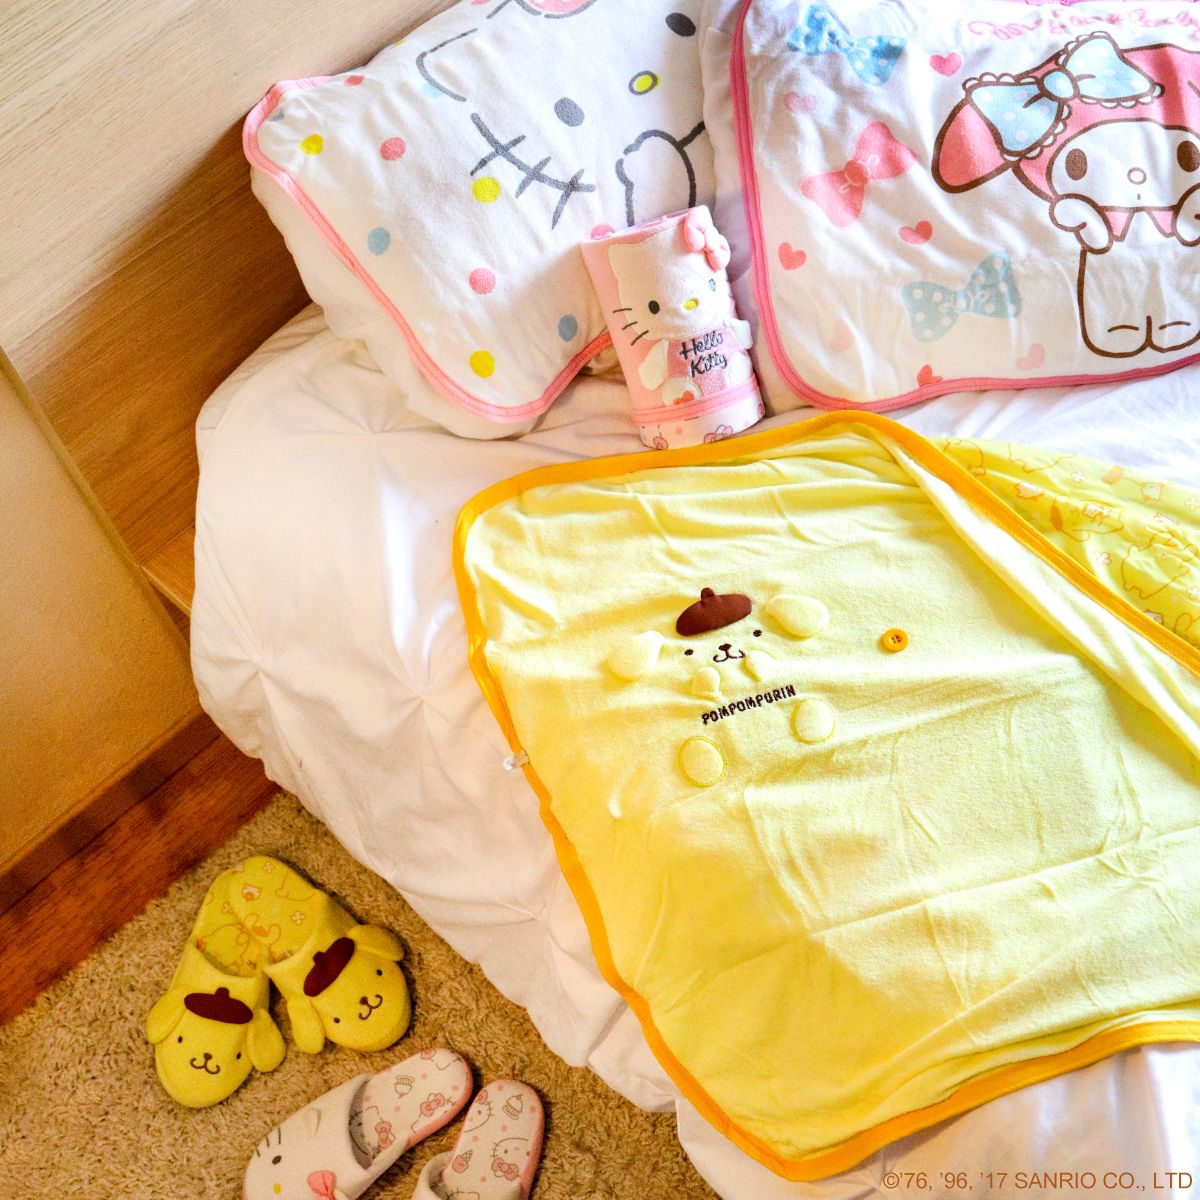 stay cool this summer with our cooling blankets and pillows home sweet home sanrio hello. Black Bedroom Furniture Sets. Home Design Ideas